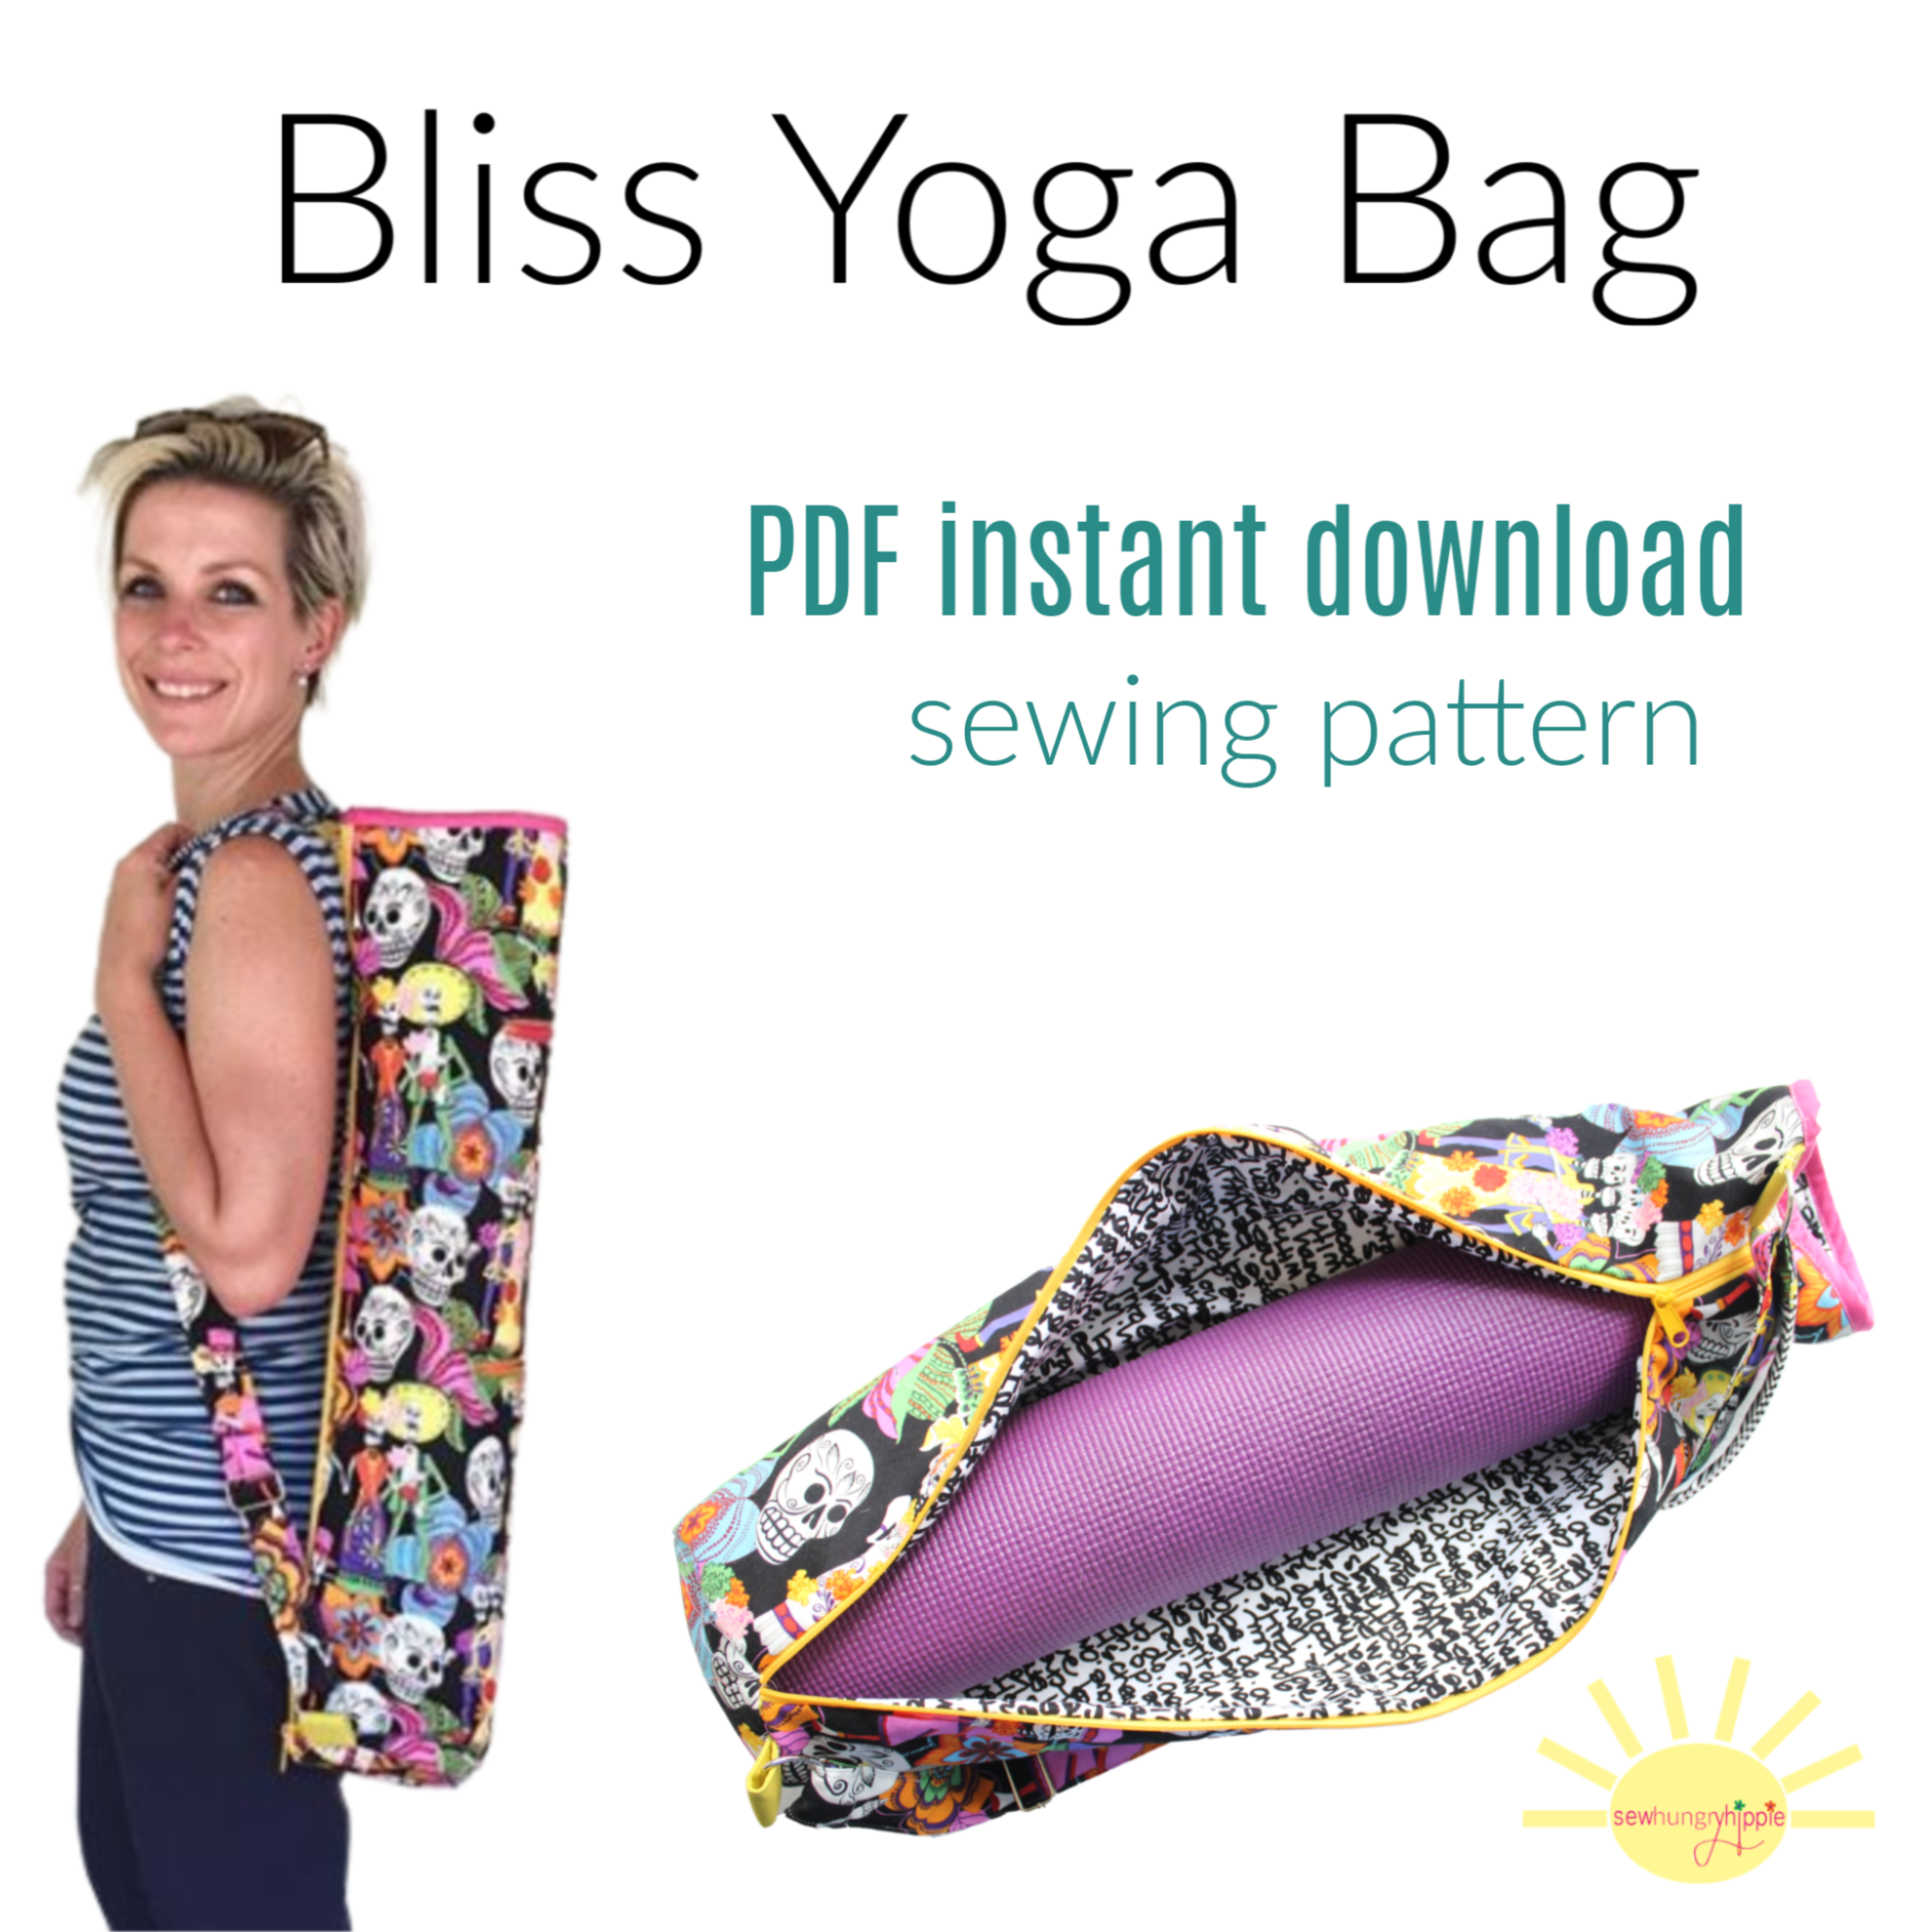 Bliss Yoga Bag PDF